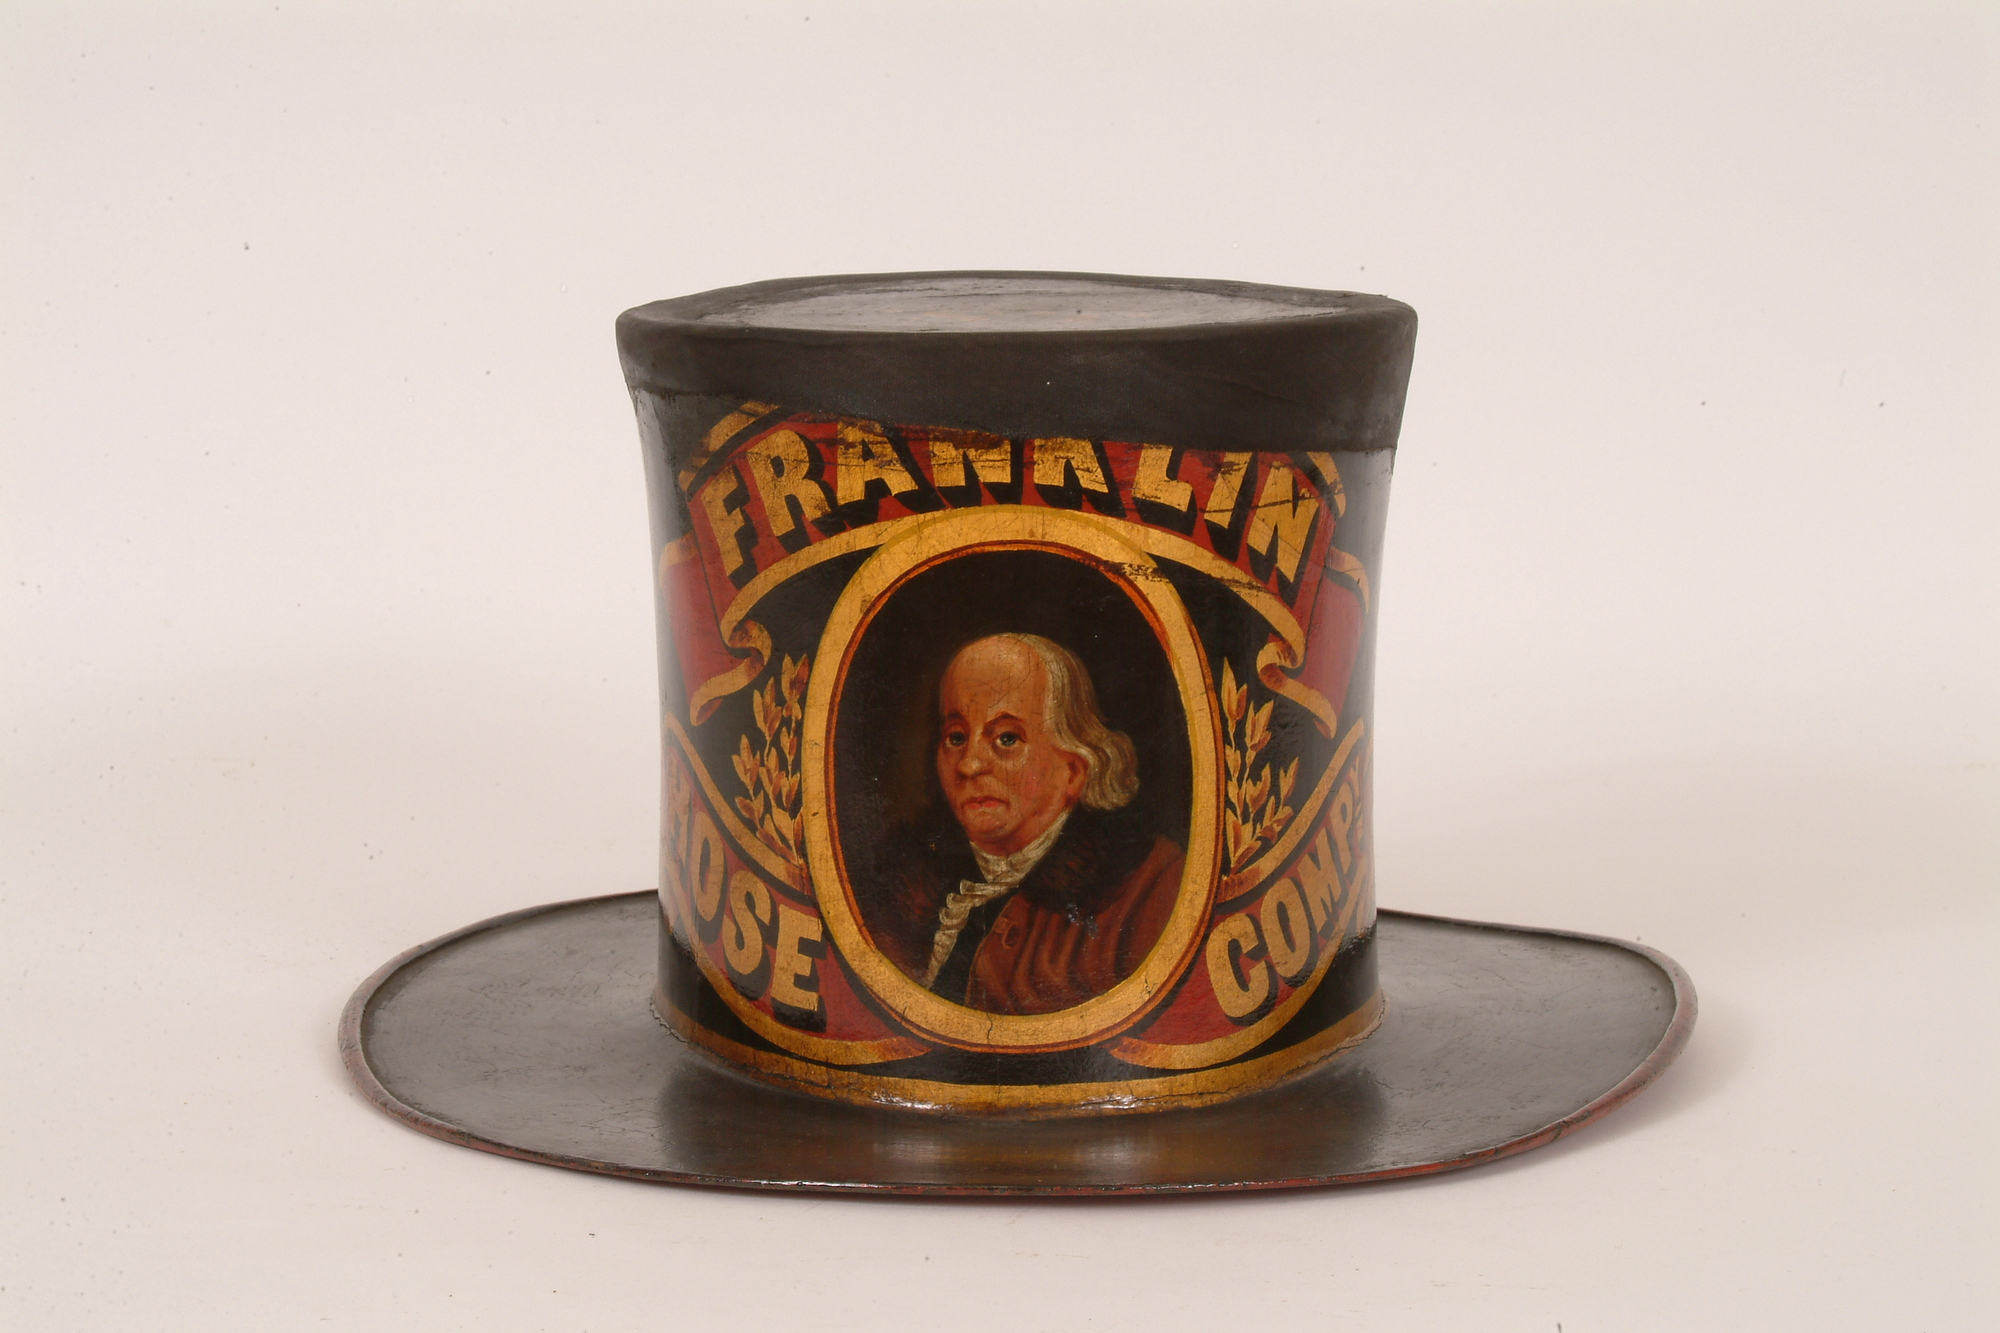 Was Benjamin Franklin The Father Of American Philanthropy